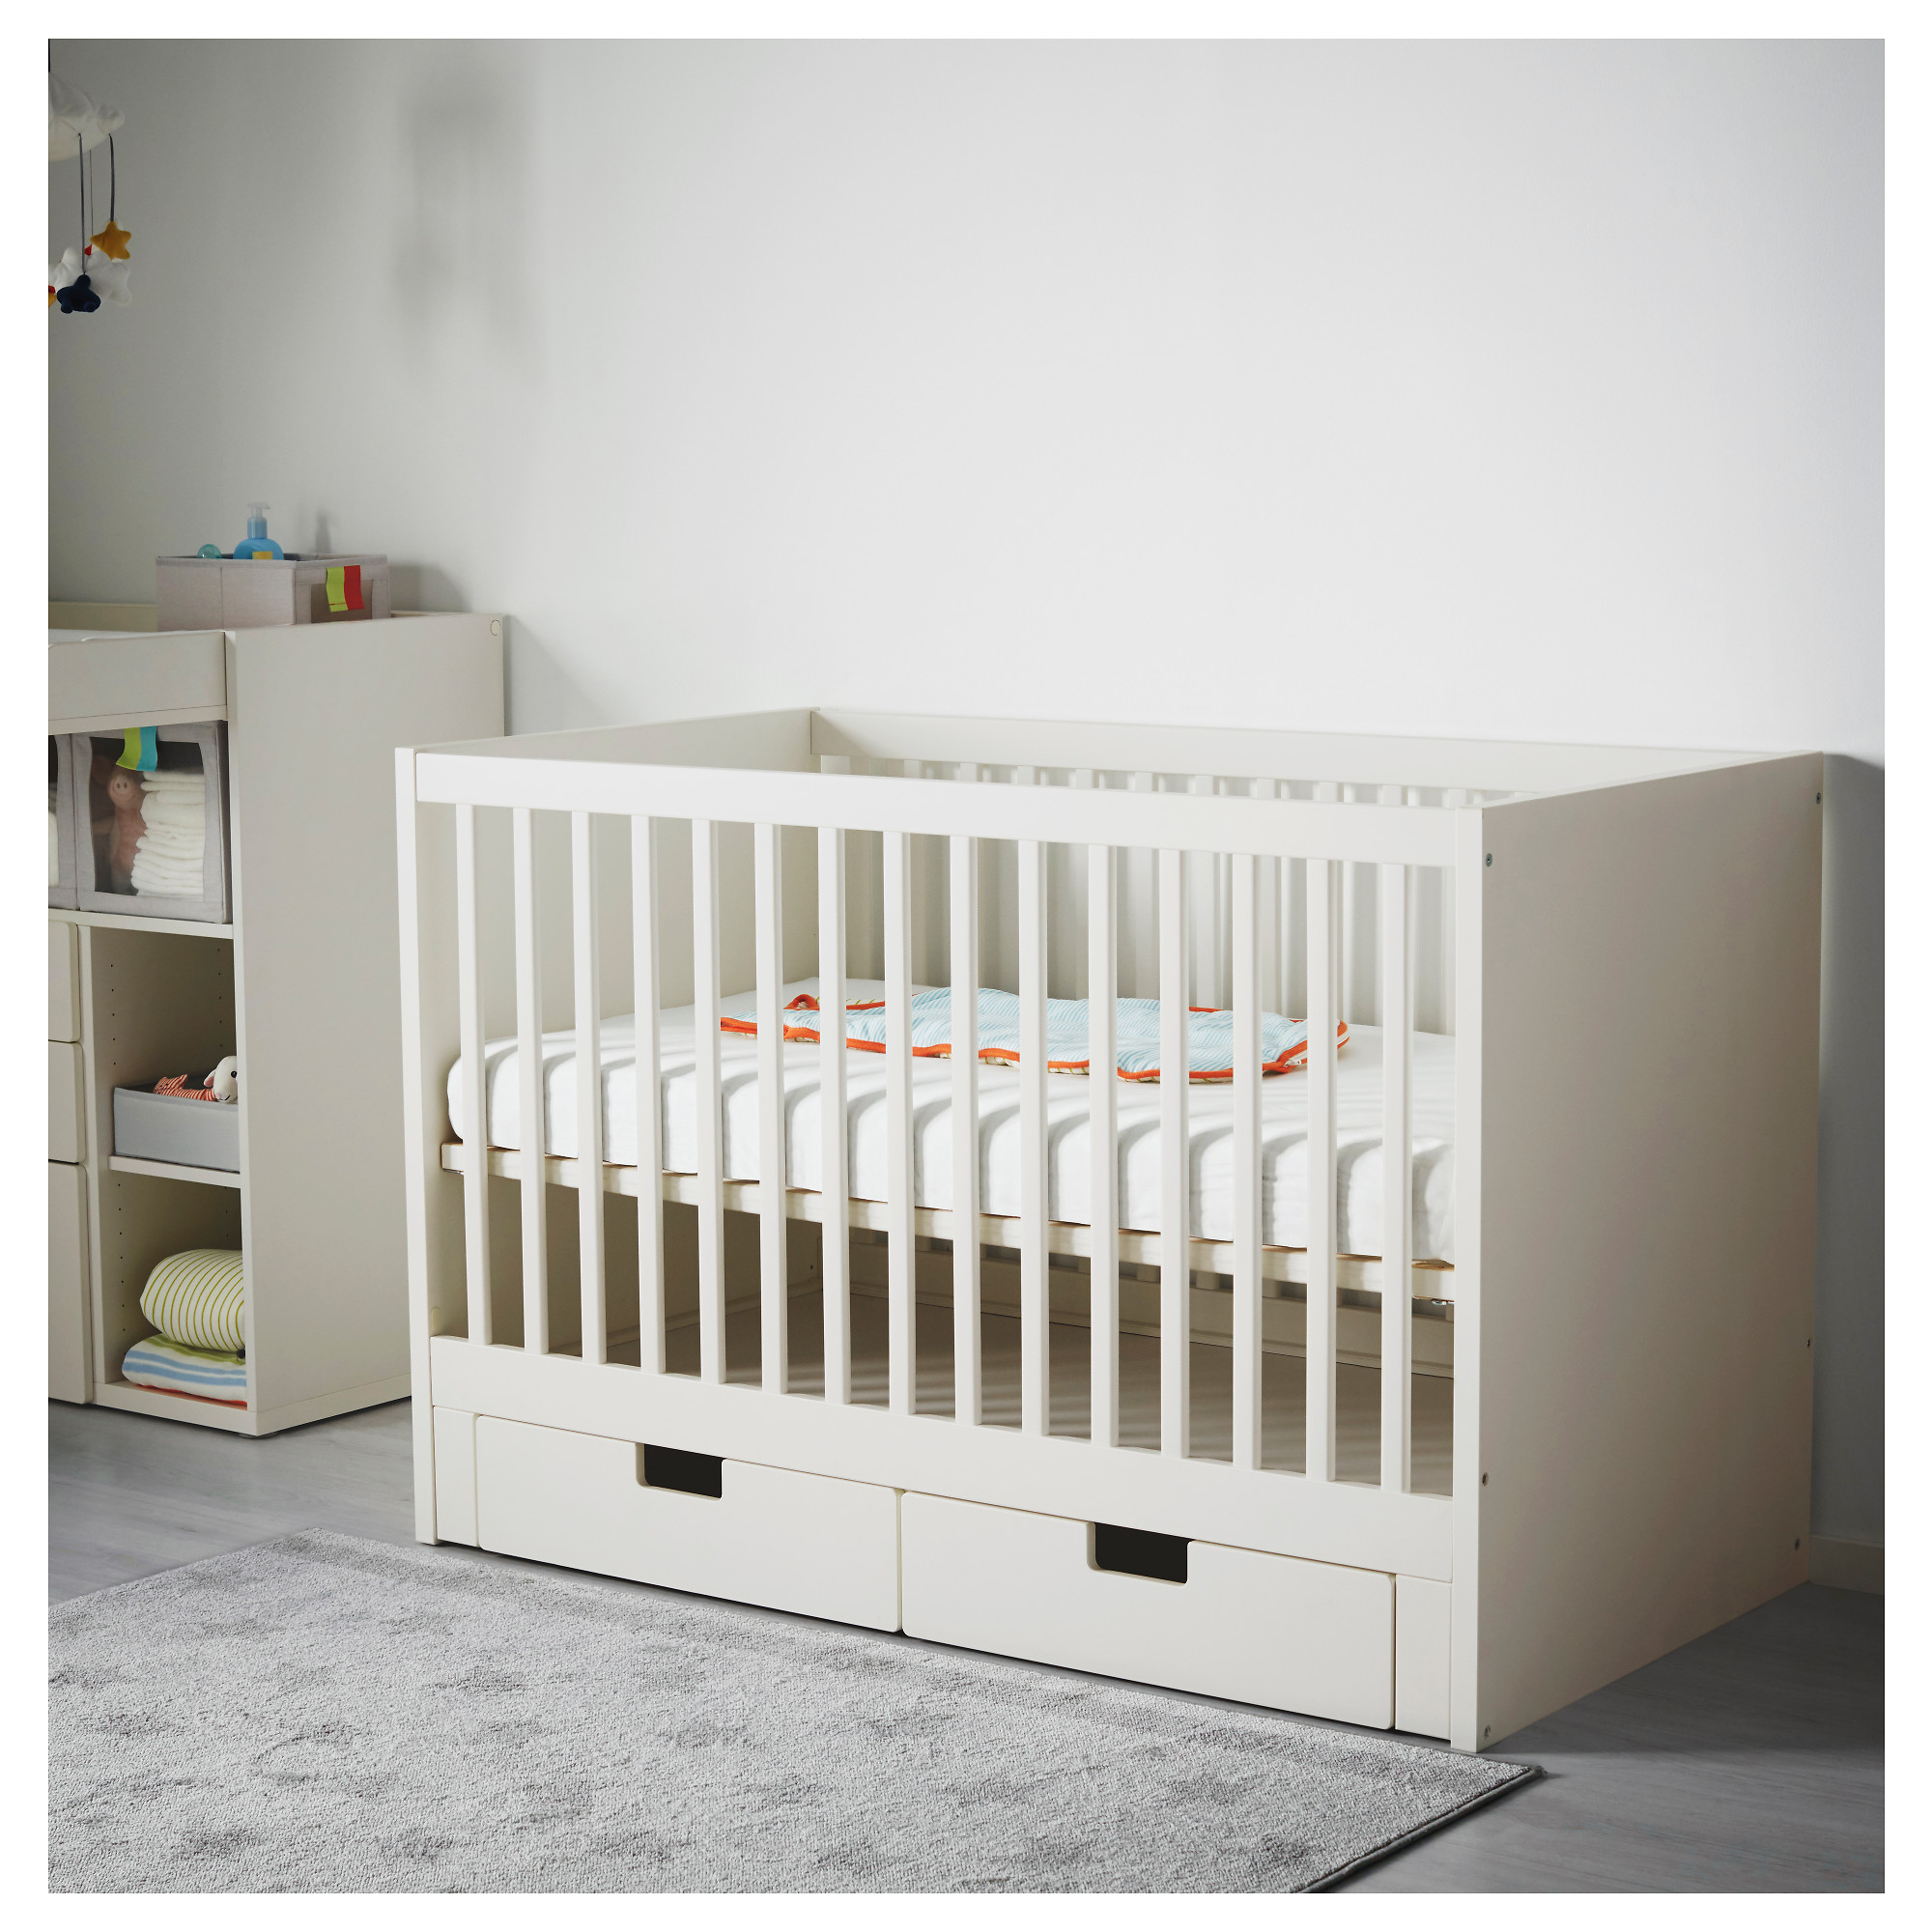 with for size baby attaches bed cute of side furniture full cribs brown bedroom mini drawers convertible boy babies white to crib that attached clearance